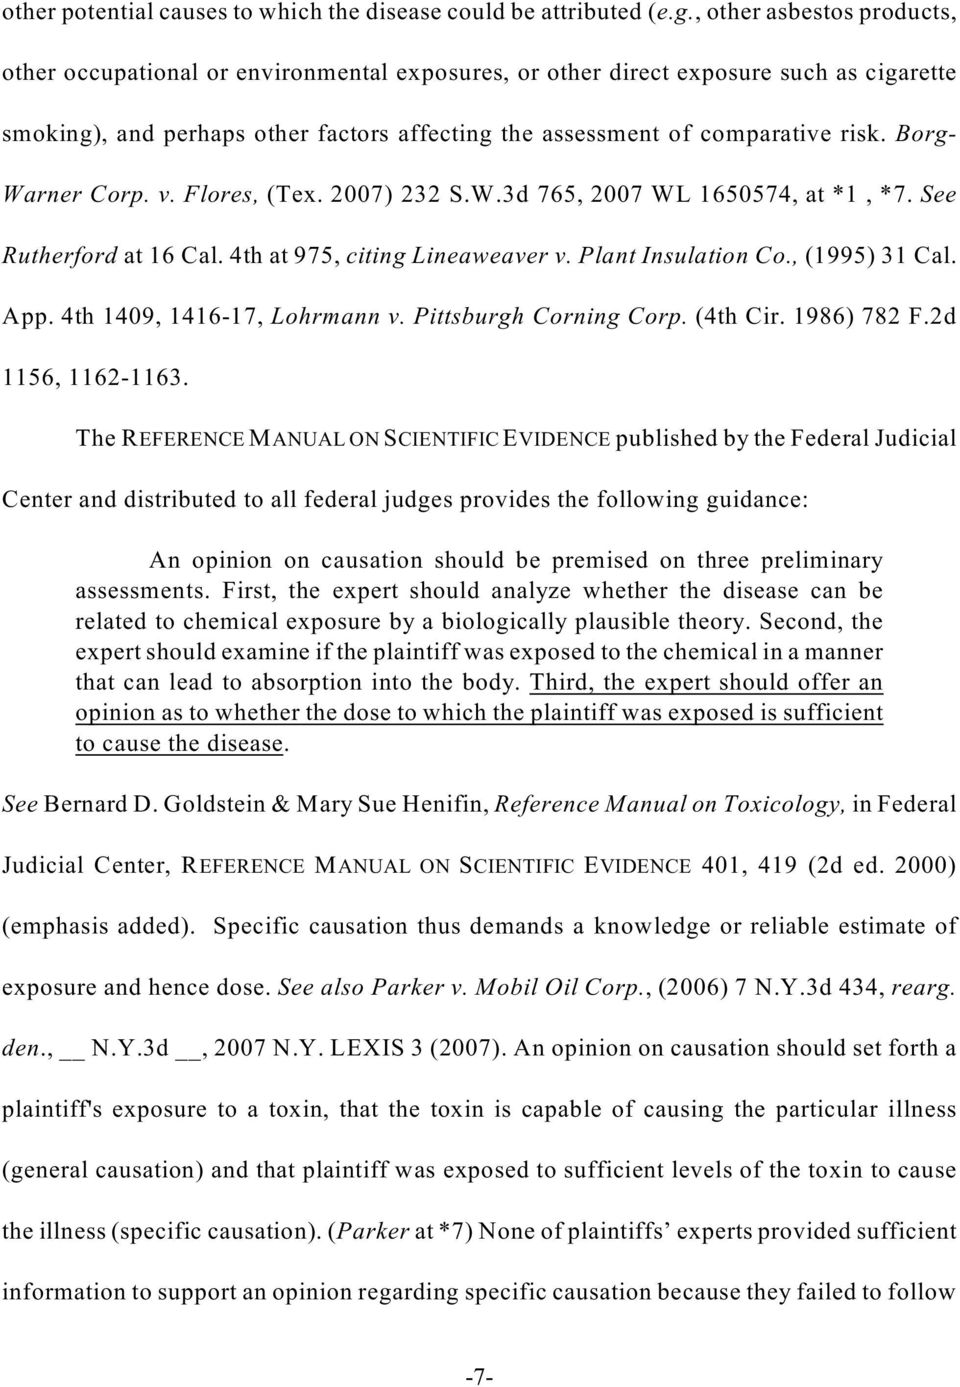 Borg- Warner Corp. v. Flores, (Tex. 2007) 232 S.W.3d 765, 2007 WL 1650574, at *1, *7. See Rutherford at 16 Cal. 4th at 975, citing Lineaweaver v. Plant Insulation Co., (1995) 31 Cal. App.